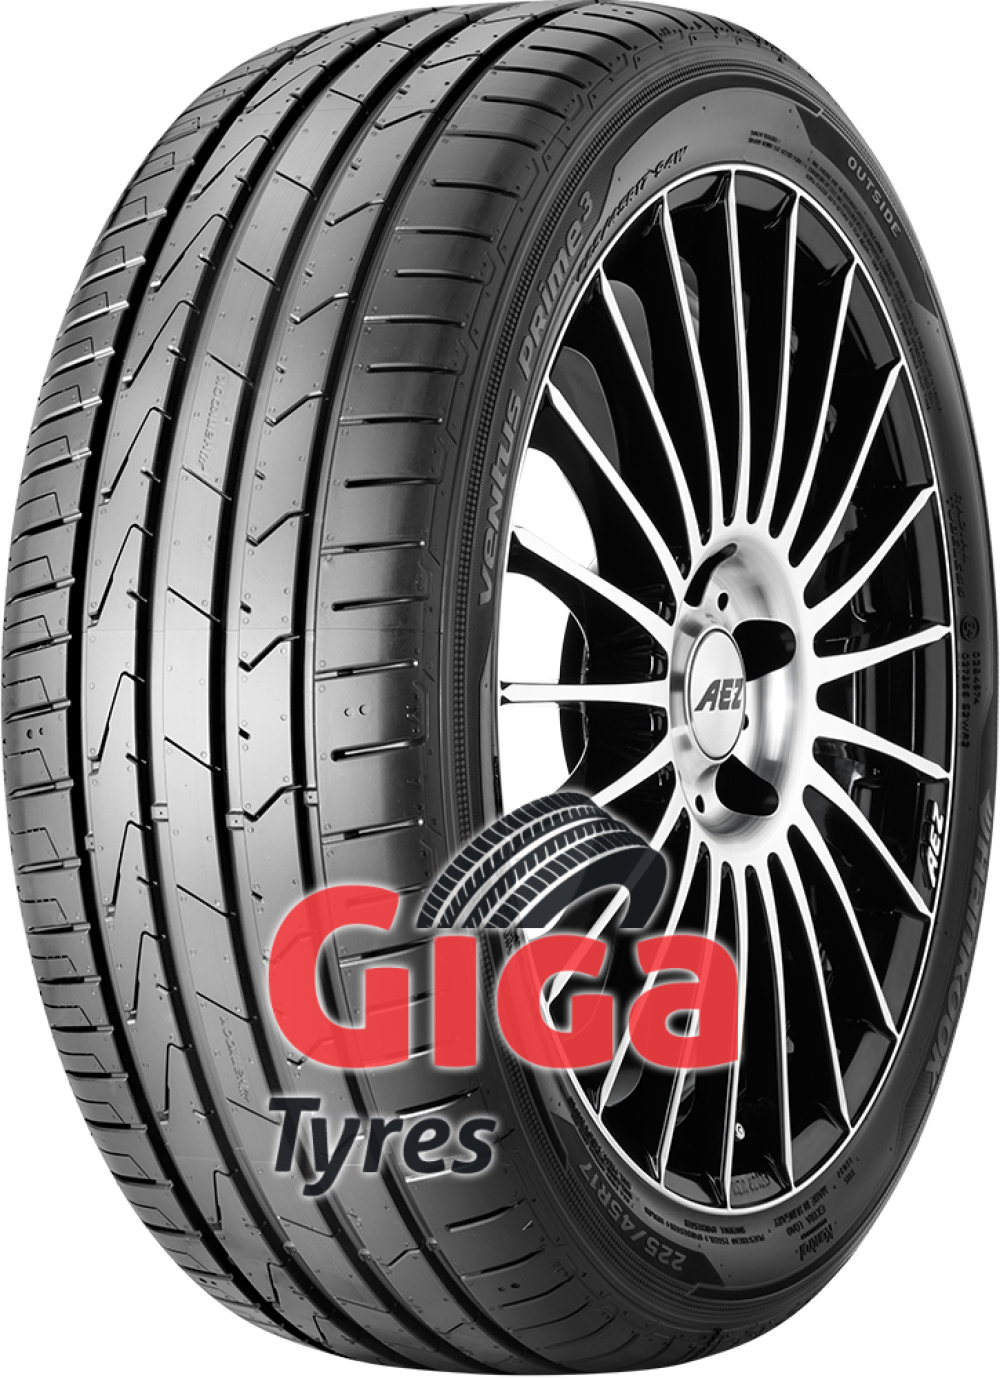 Hankook Ventus Prime 3 K125 ( 195/50 R16 88V XL with rim protection (MFS) SBL )